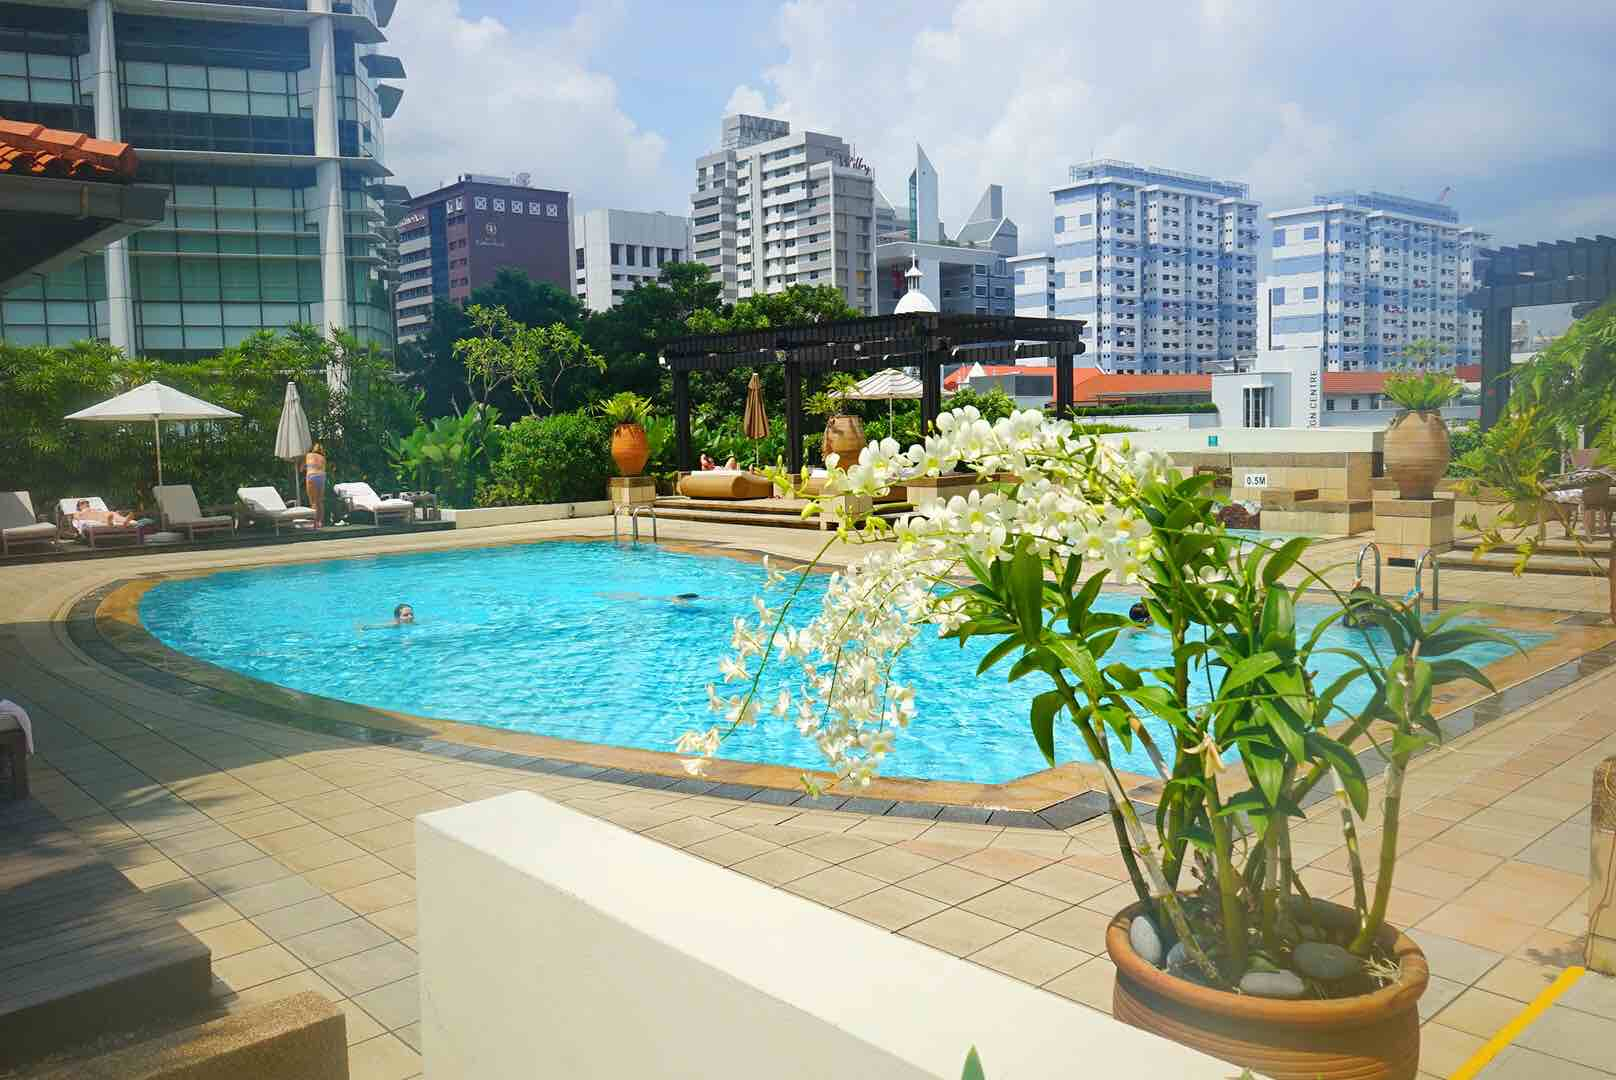 InterContinental® Singapore Pool - AspirantSG